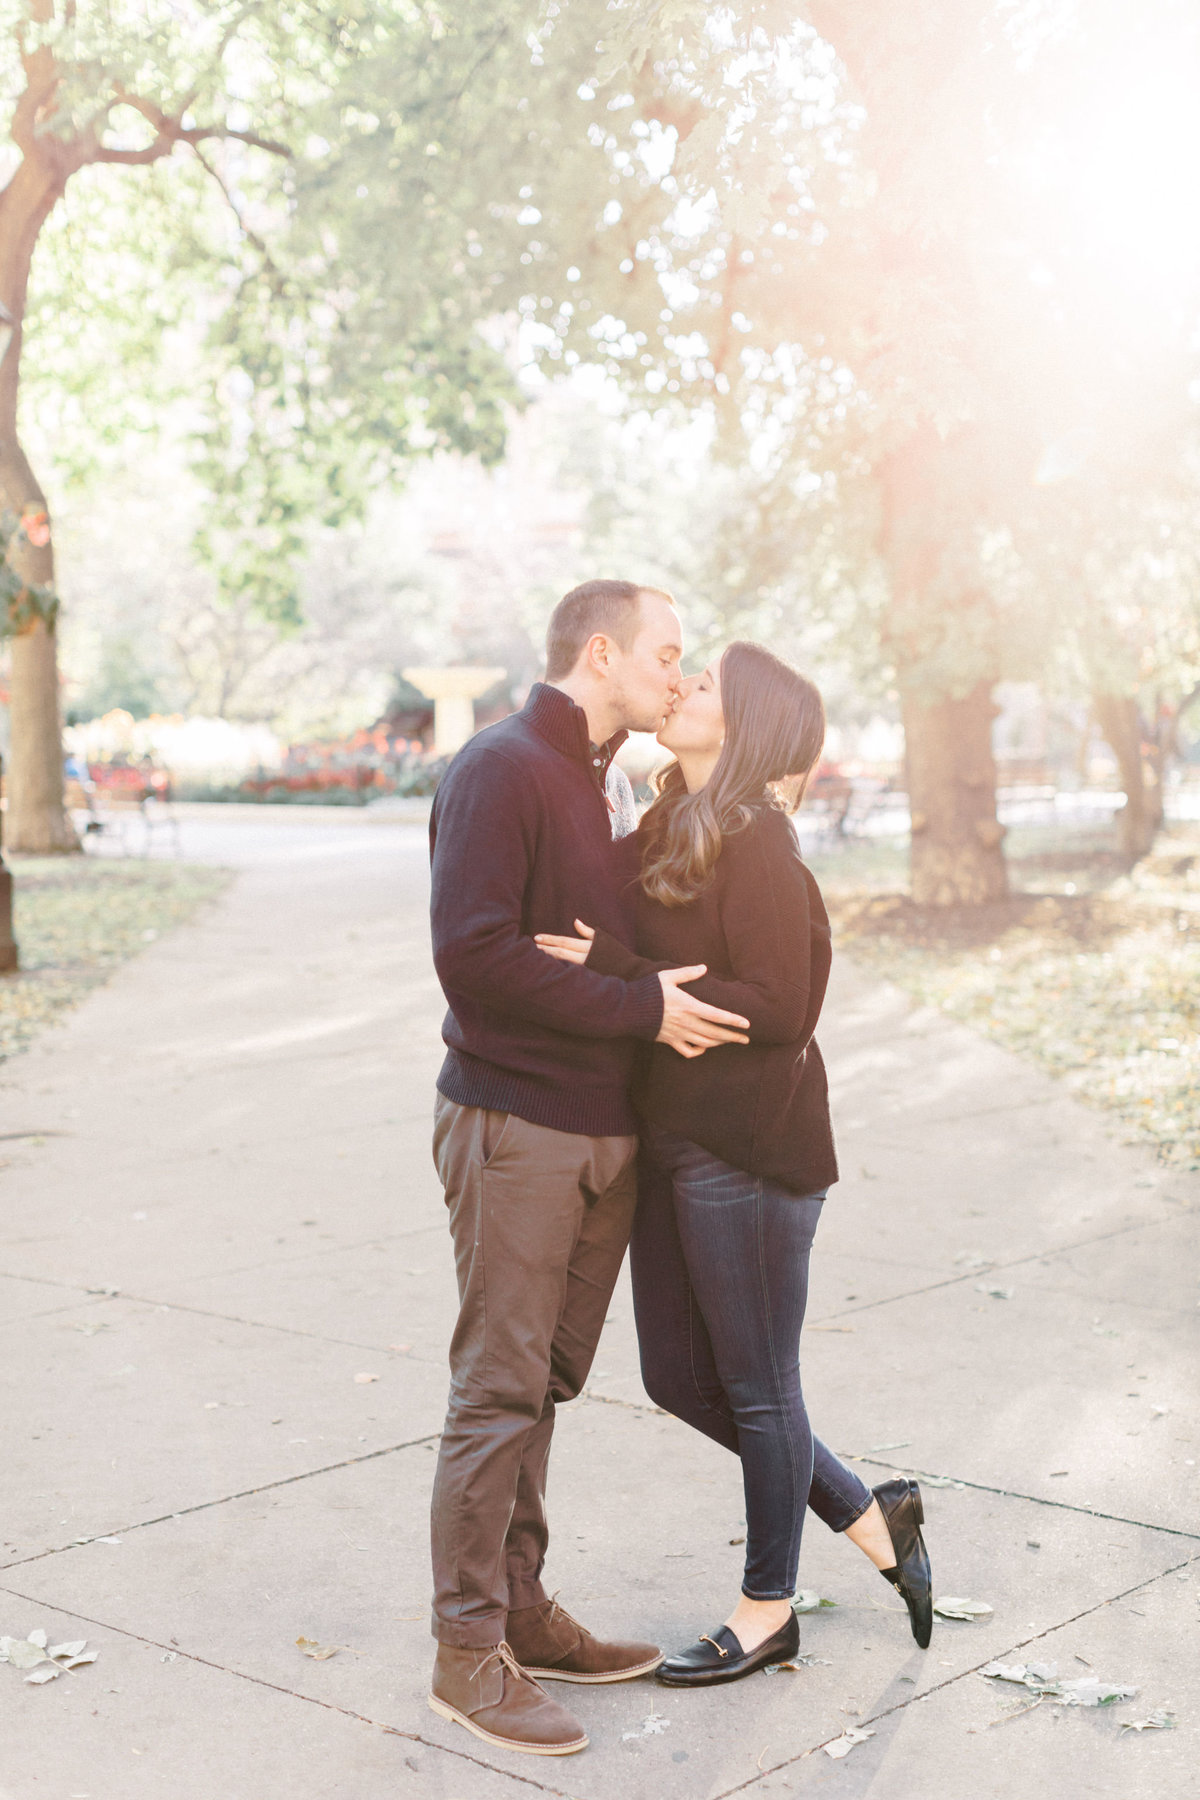 TiffaneyChildsPhotography-ChicagoWeddingPhotographer-Nicole+Christopher-WashingtonSquare&NorthAvenueEngagementSession-81